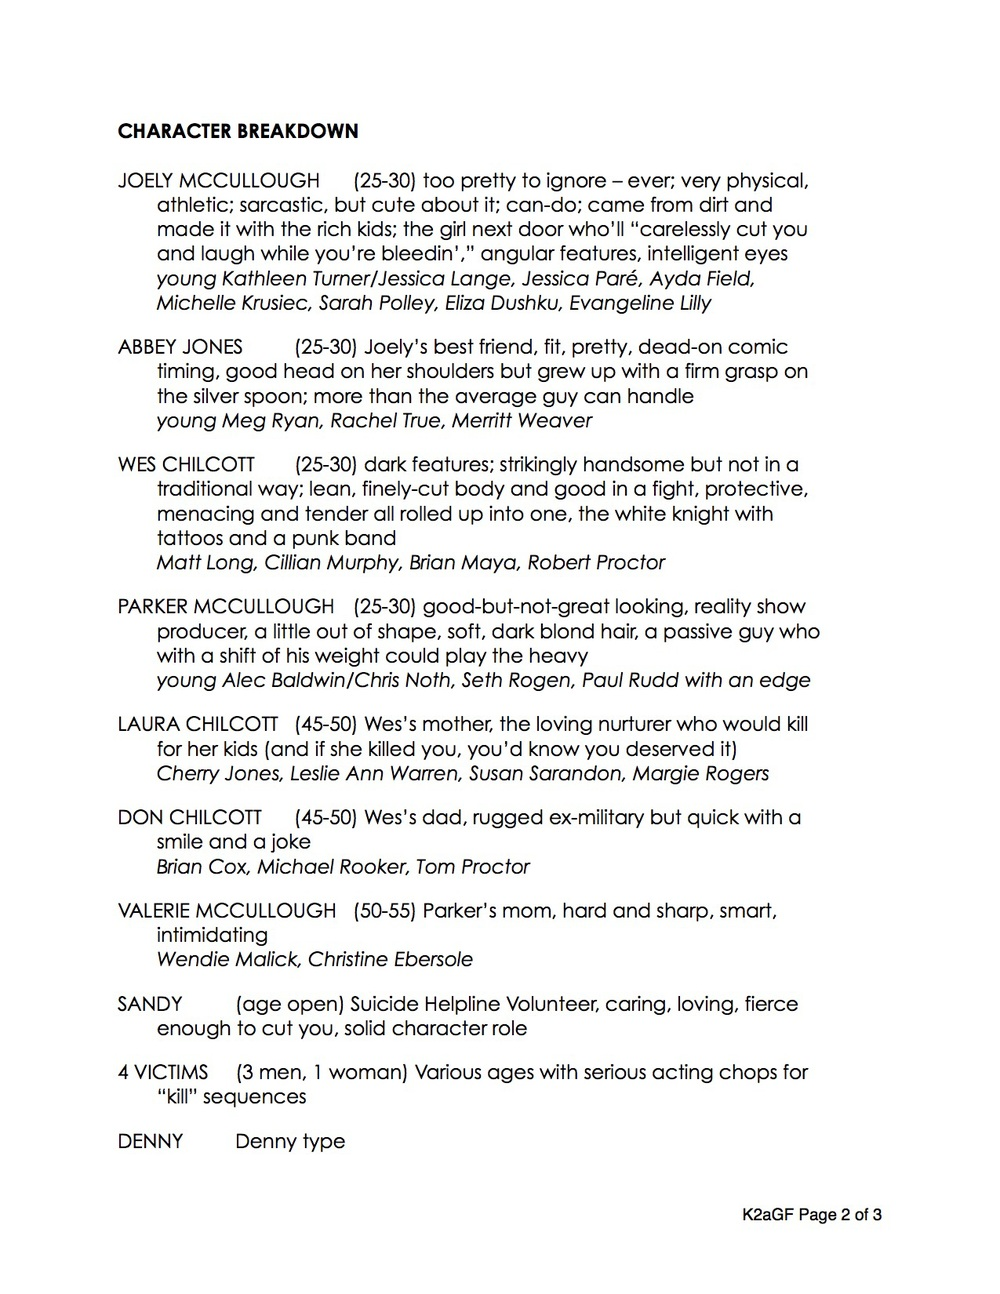 Sample K2agf Film Treatment Adam Jackman Knife To A Gunfight Feature Short  Form Rundown Page 2